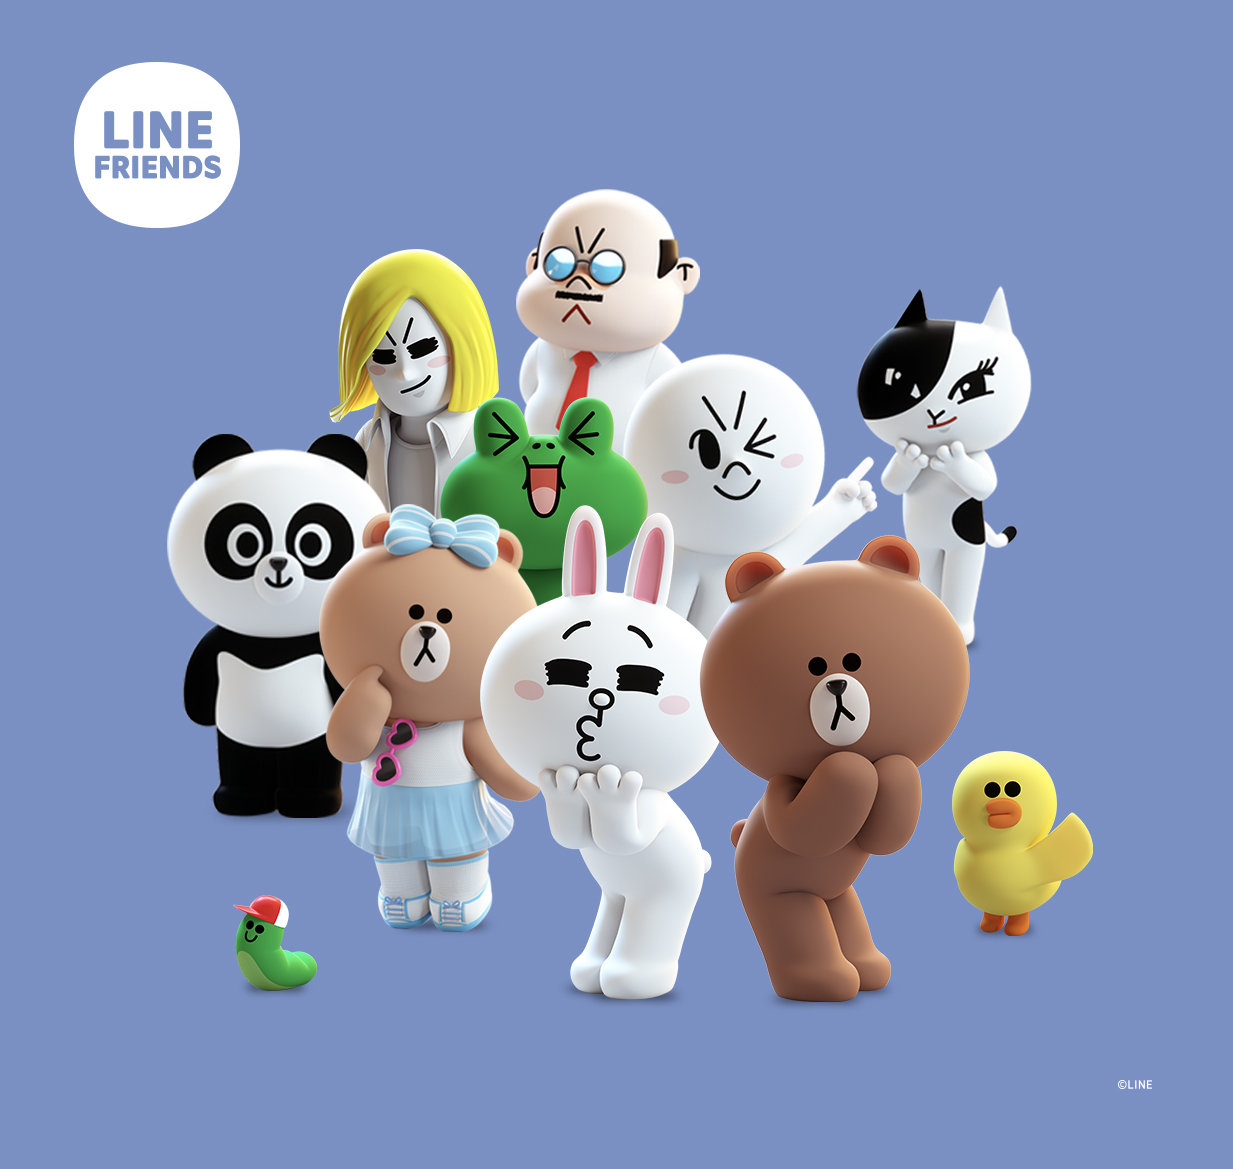 WildBrain CPLG Connects With New European Partners For Line Friends image